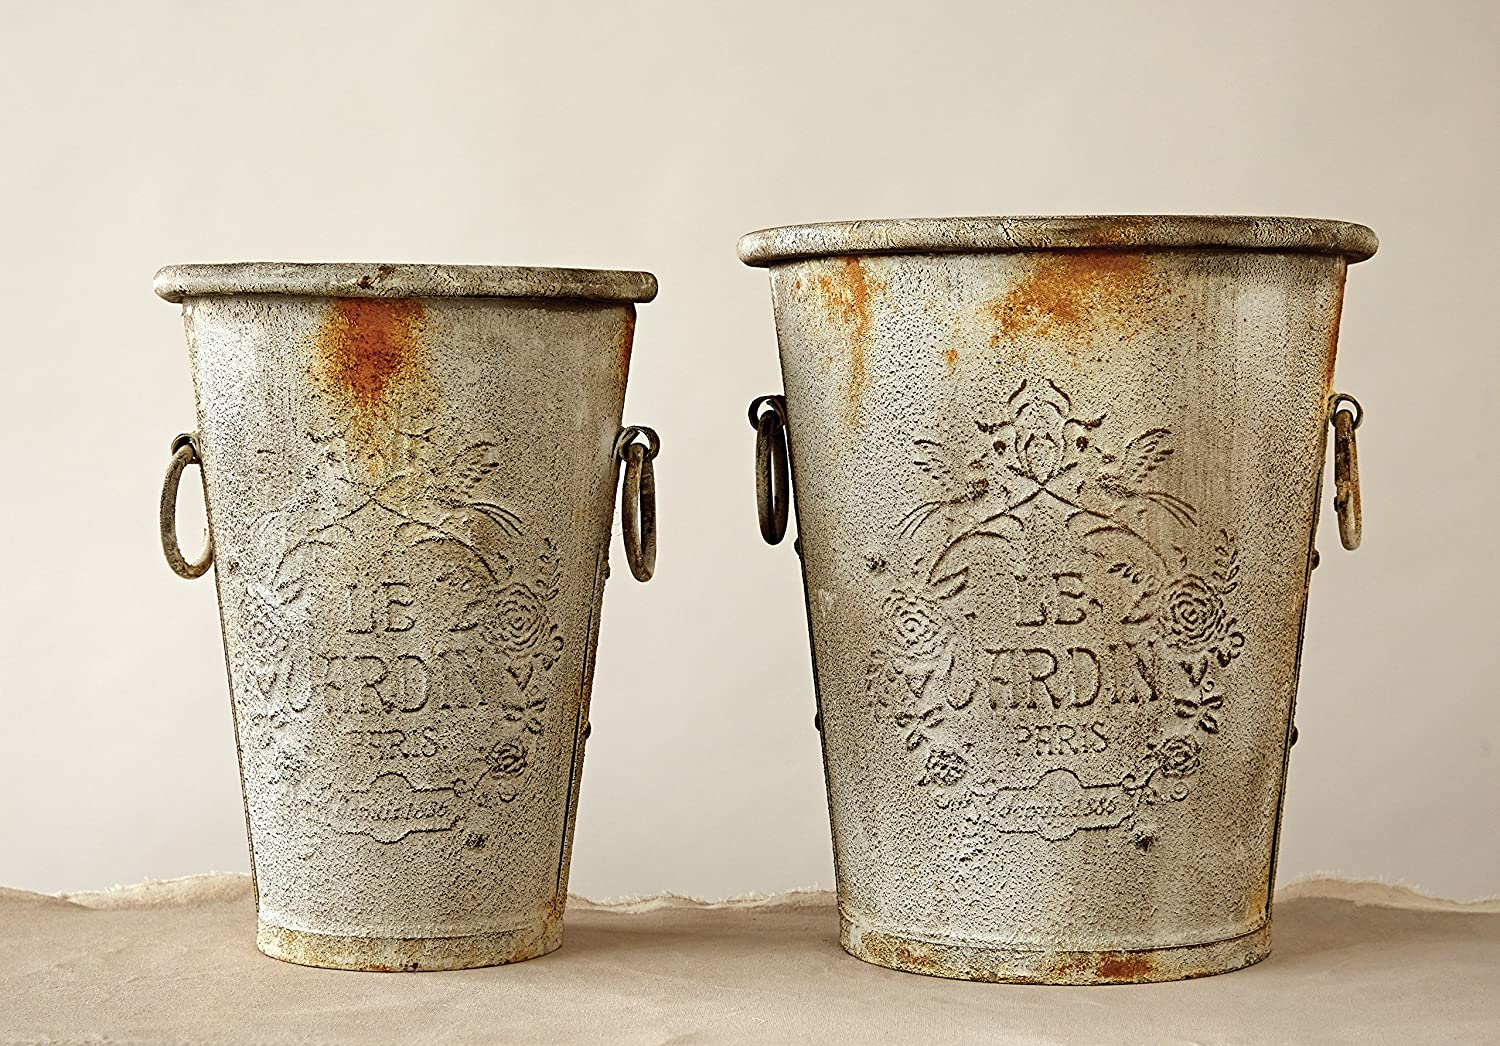 Embossed metal rustic French bucket set - French farmhouse decor idea!